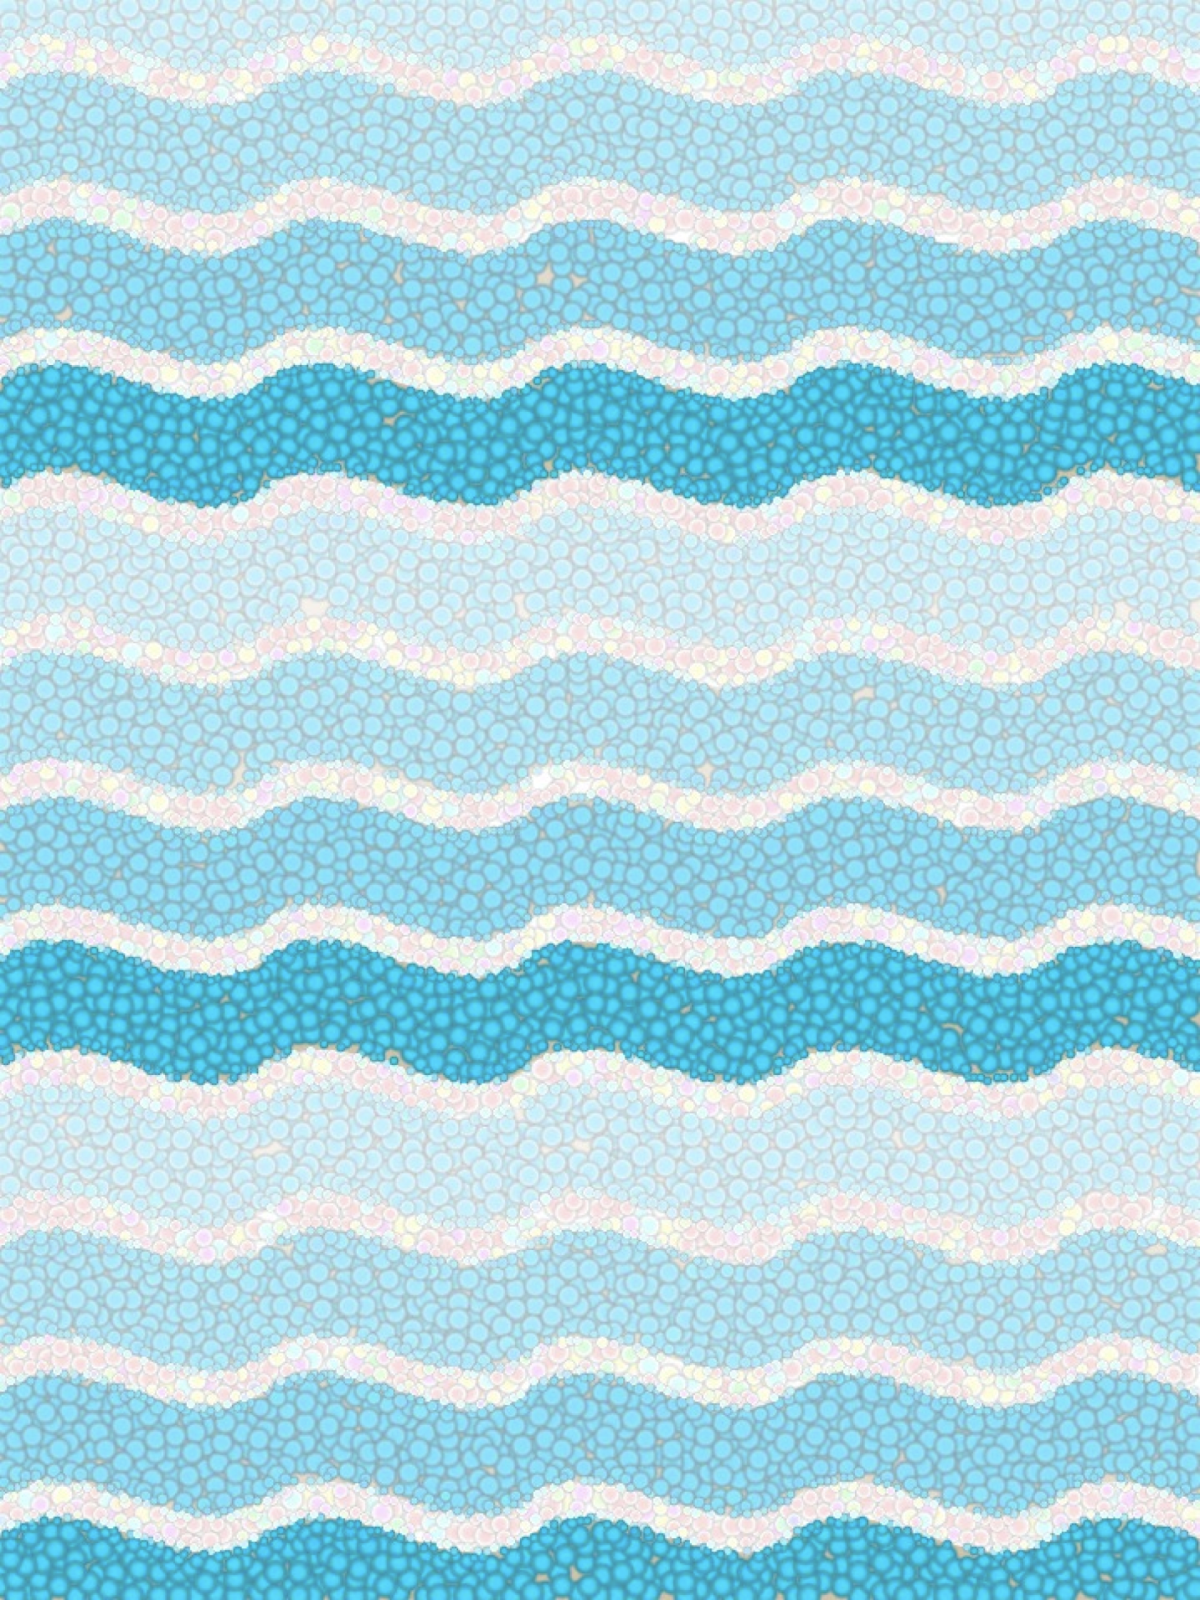 Weaves clipart background Clipart Waves 4731 ClipartMe Picture